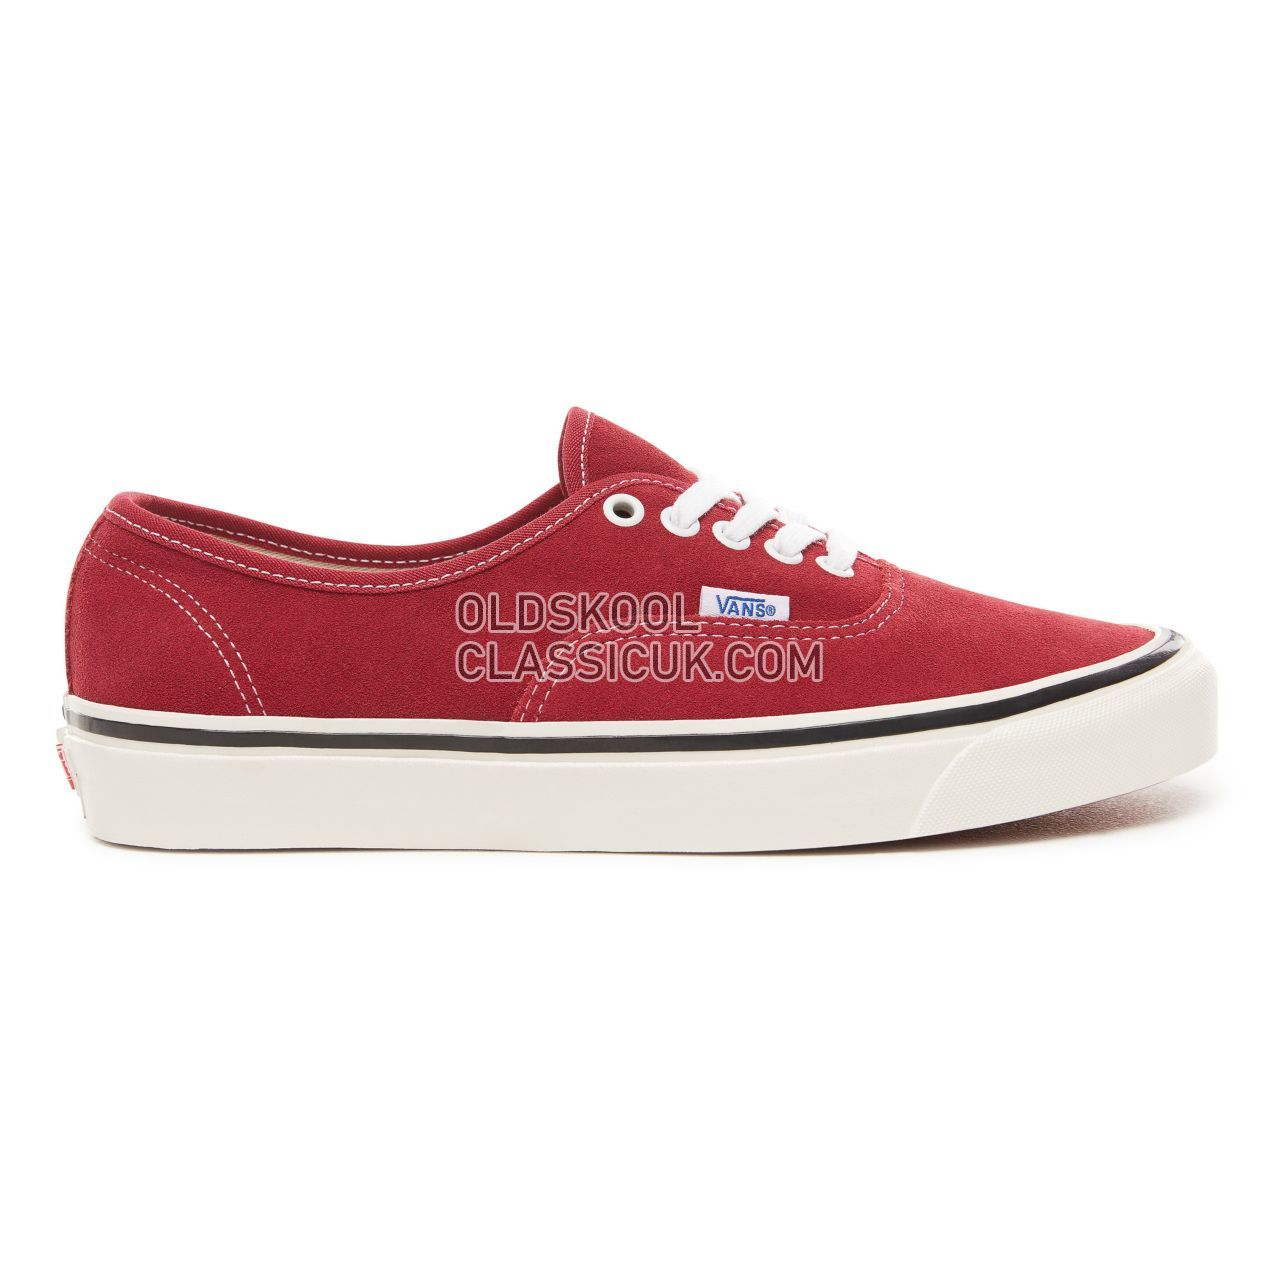 Vans Anaheim Factory Authentic 44 DX Sneakers Mens (Anaheim Factory) Og Brick/Suede VN0A38ENUL2 Shoes